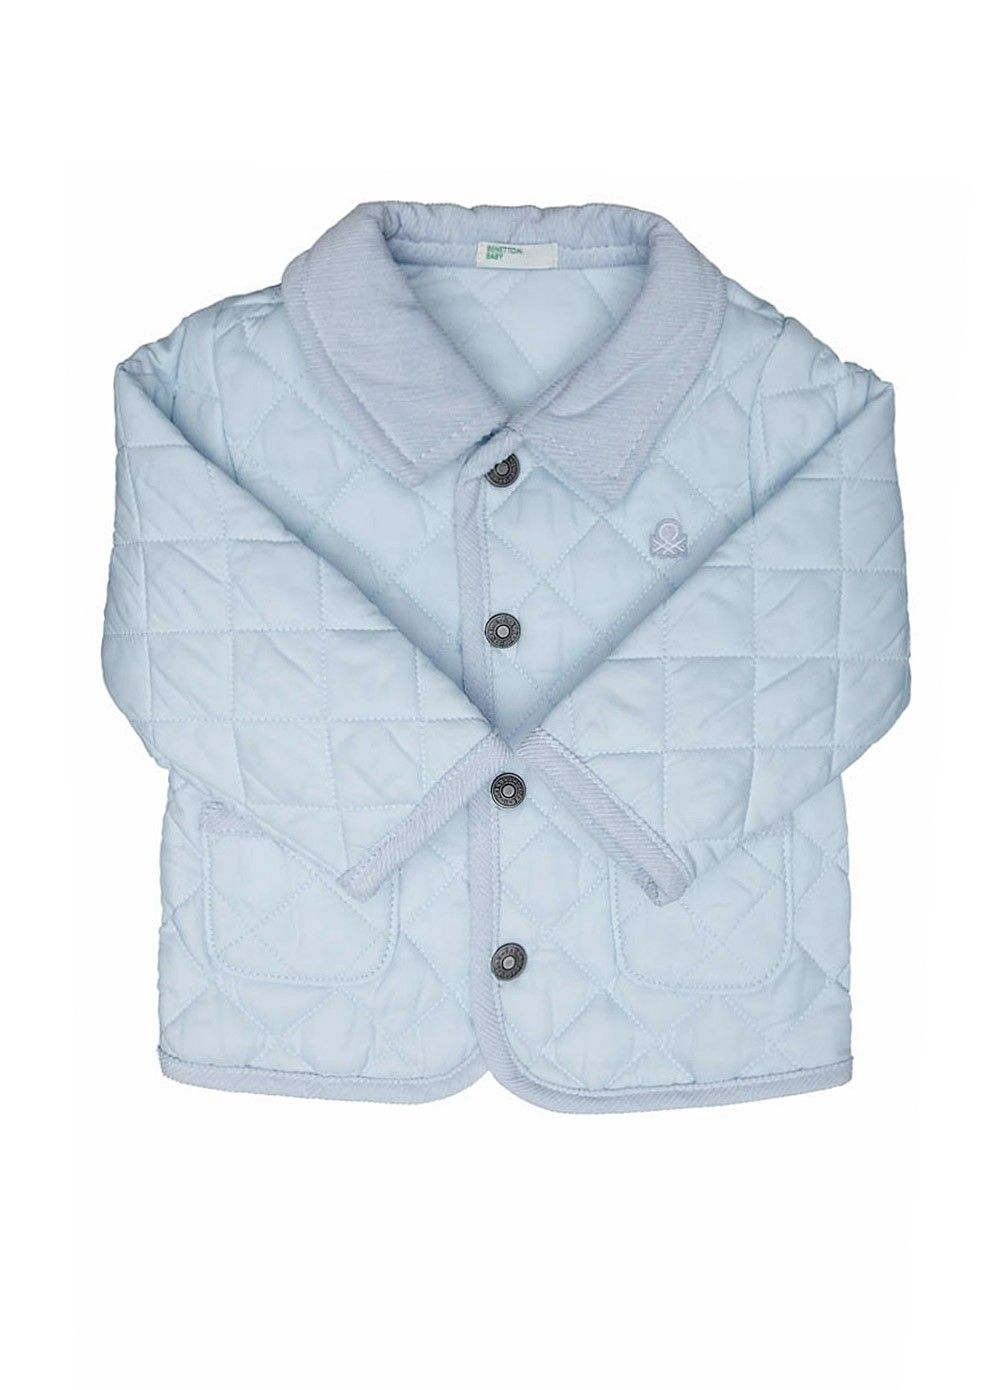 01c43da09 Benetton Baby Quilted Jacket With Logo in Light Blue - A firm ...